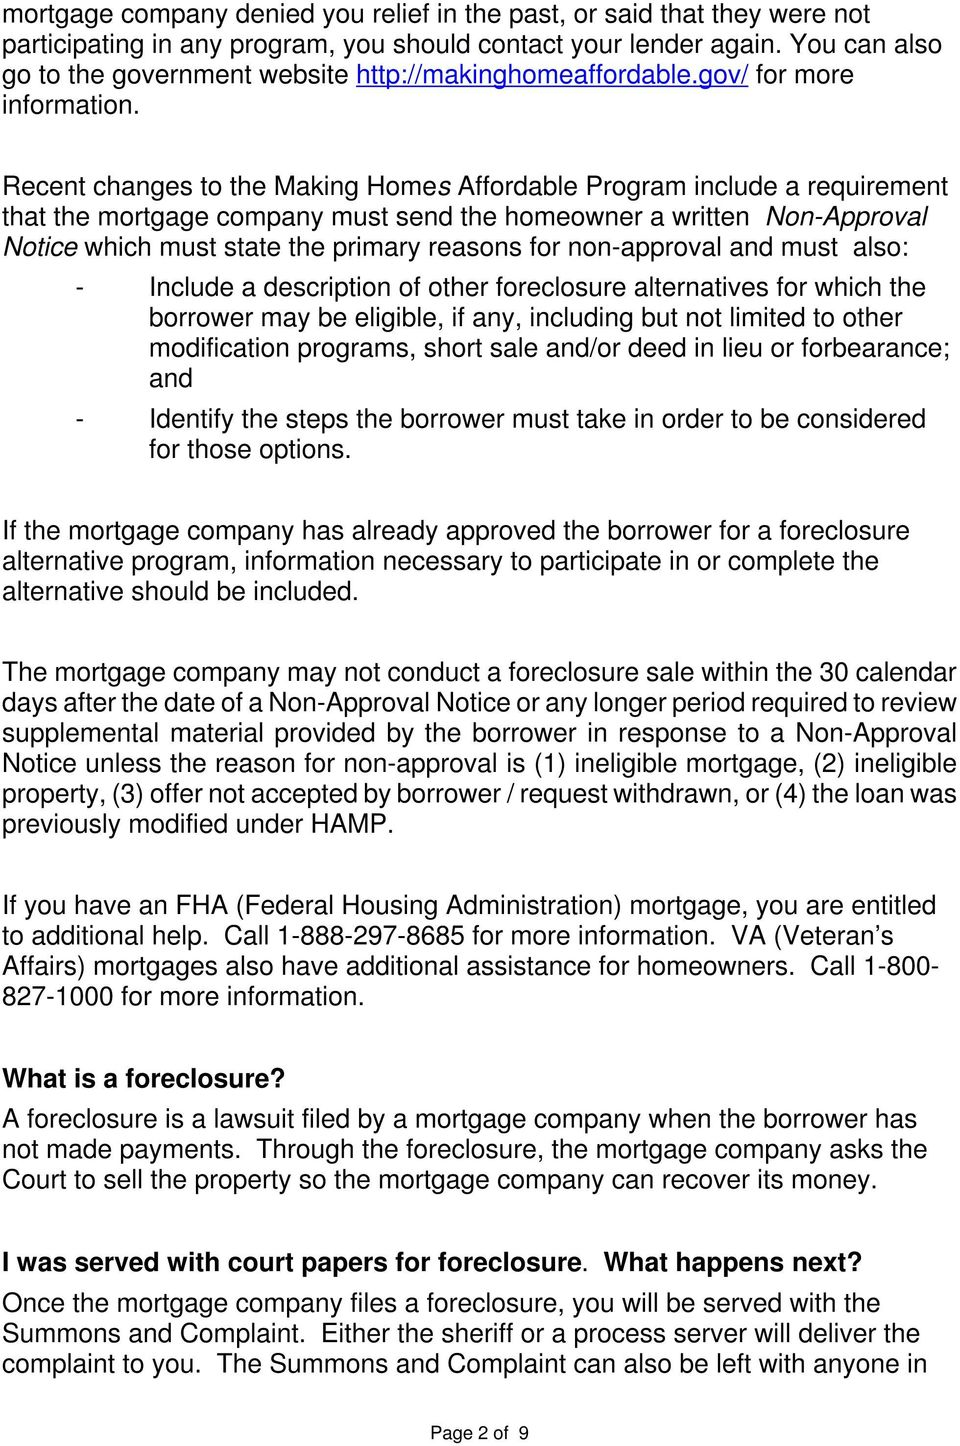 Recent changes to the Making Homes Affordable Program include a requirement that the mortgage company must send the homeowner a written Non-Approval Notice which must state the primary reasons for